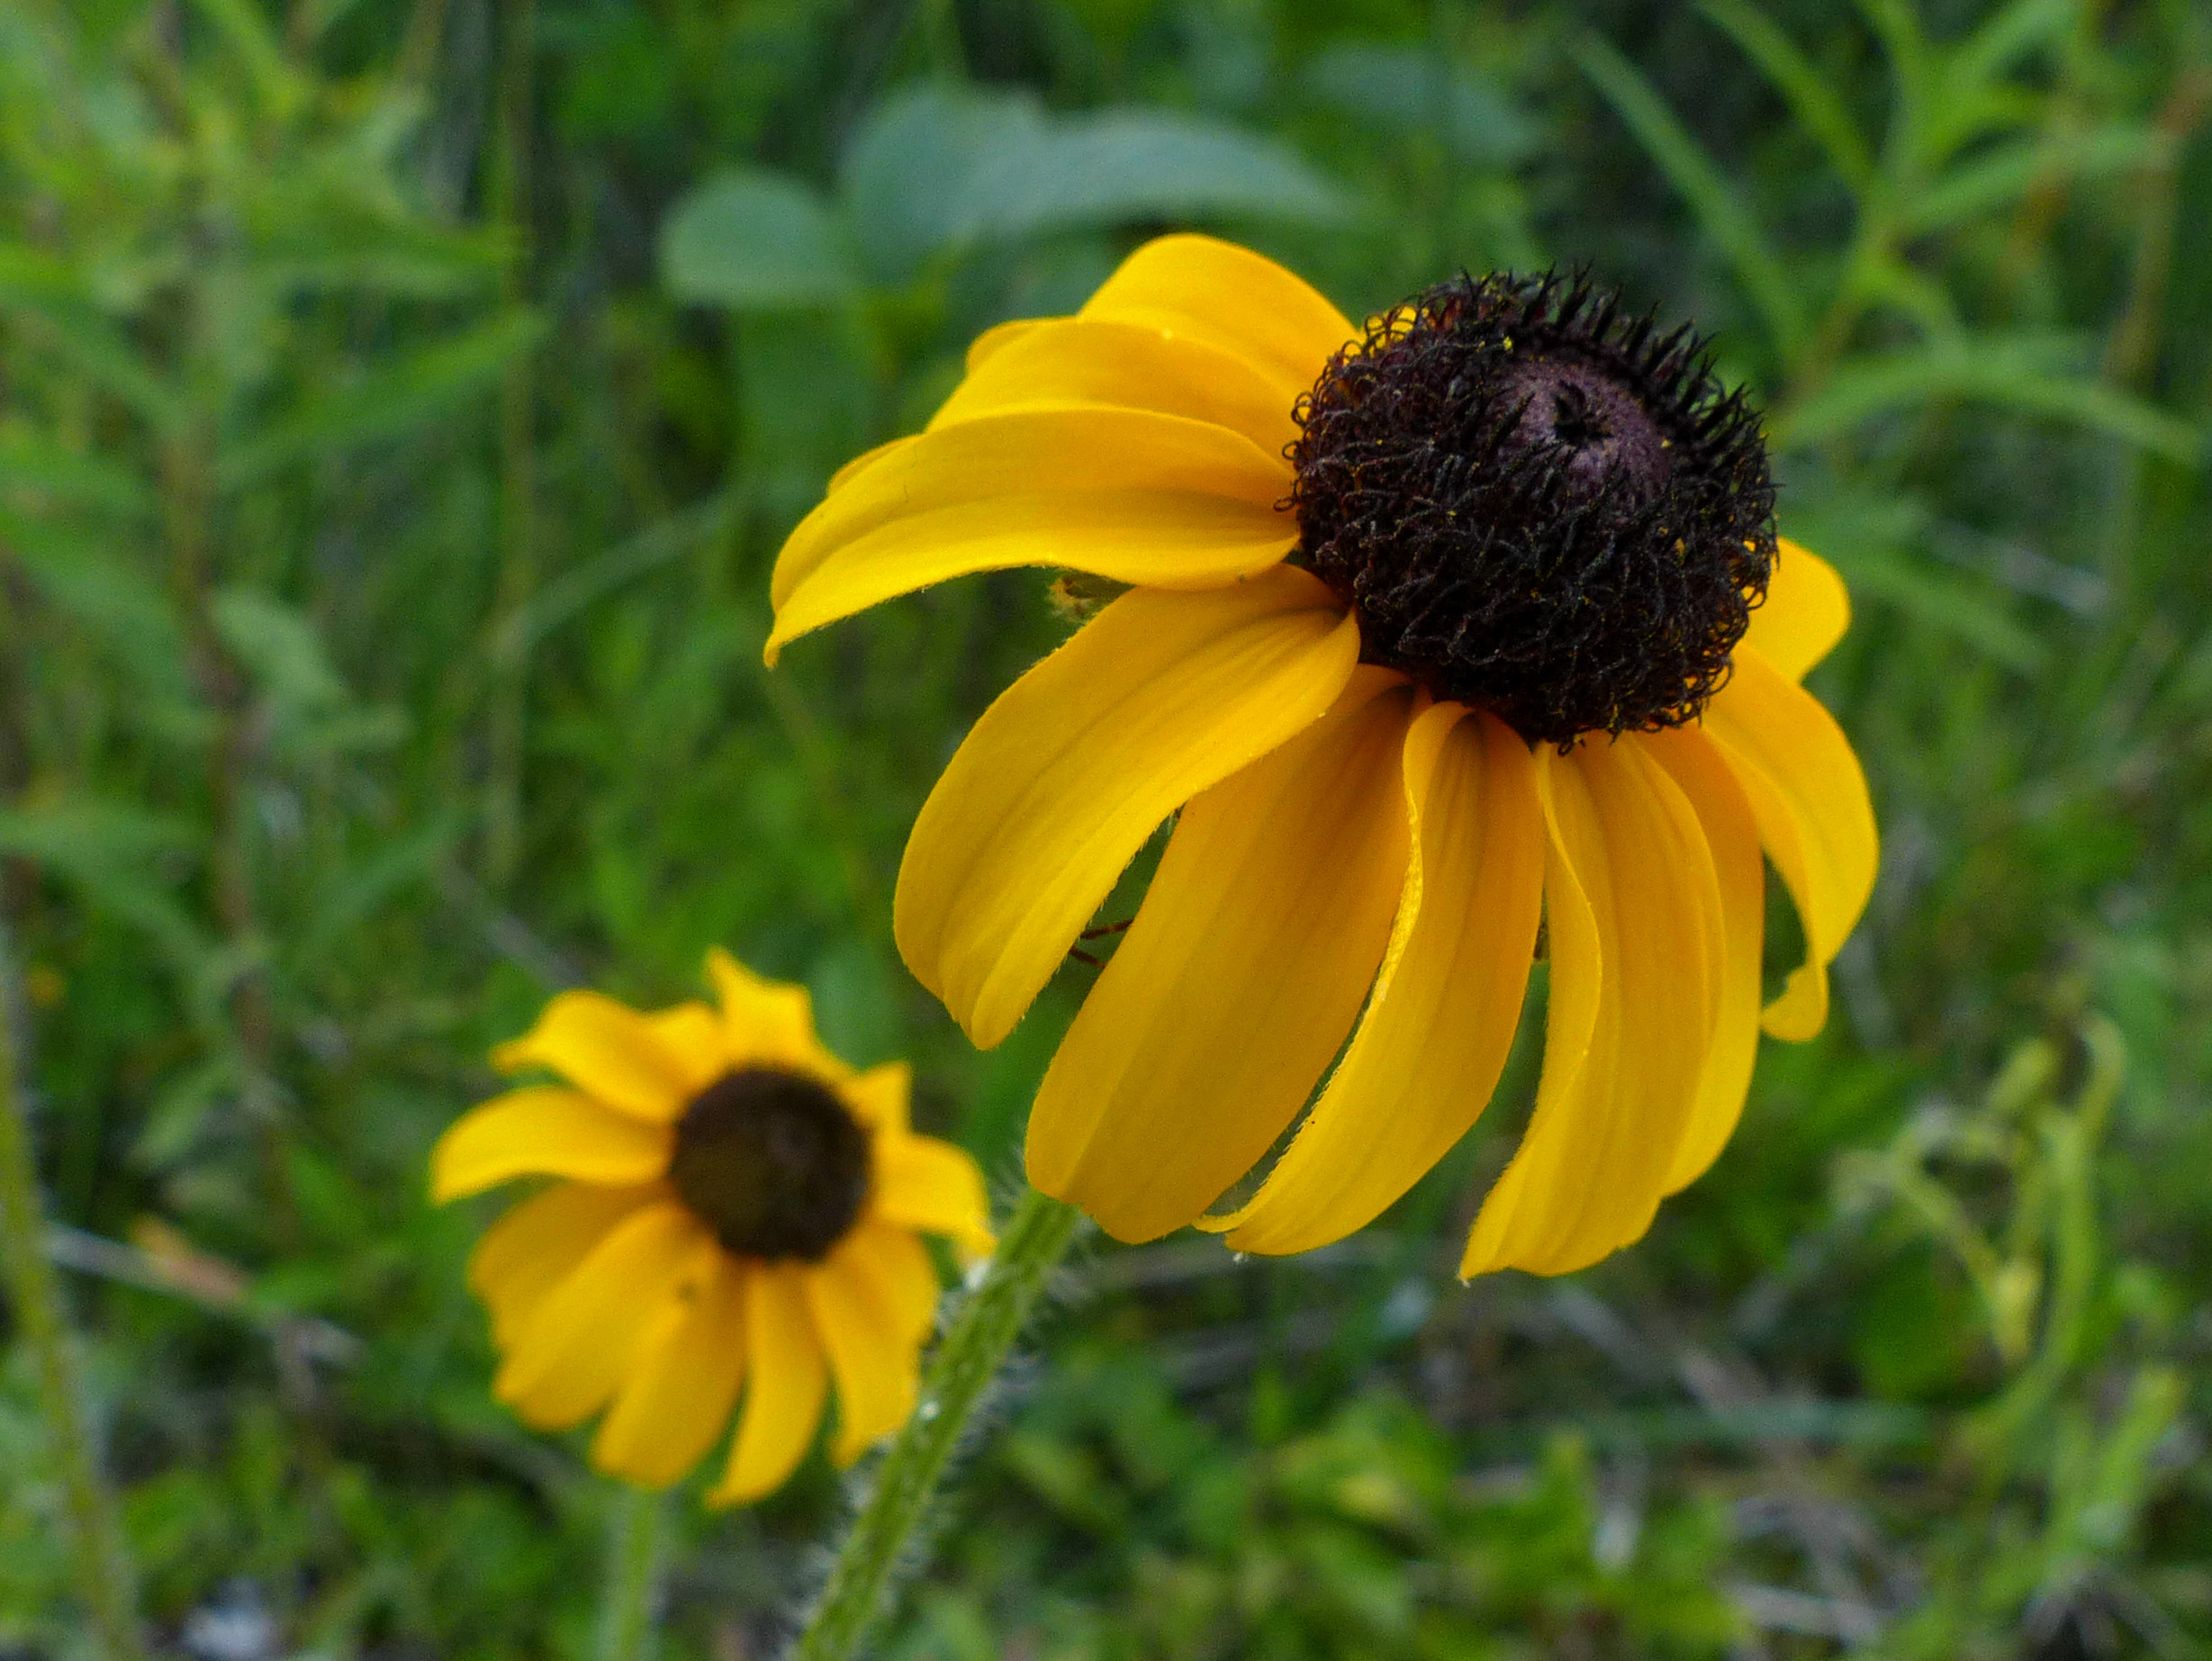 Black-eyed Susan1 070918 MI trip fz200 fix